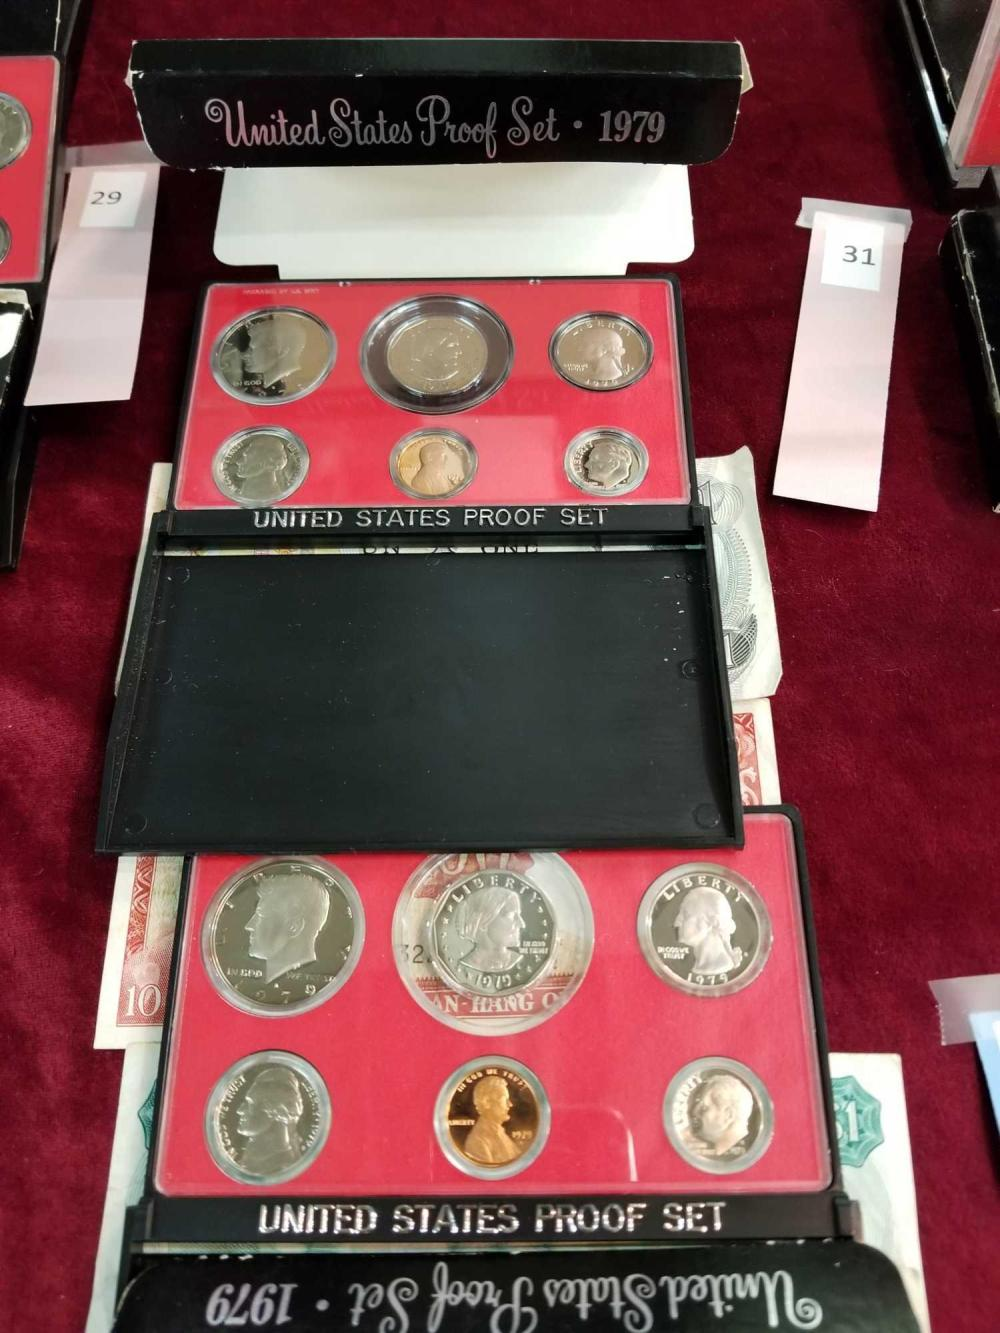 1979 U.S. PROOF COIN SETS - 2 ITEMS